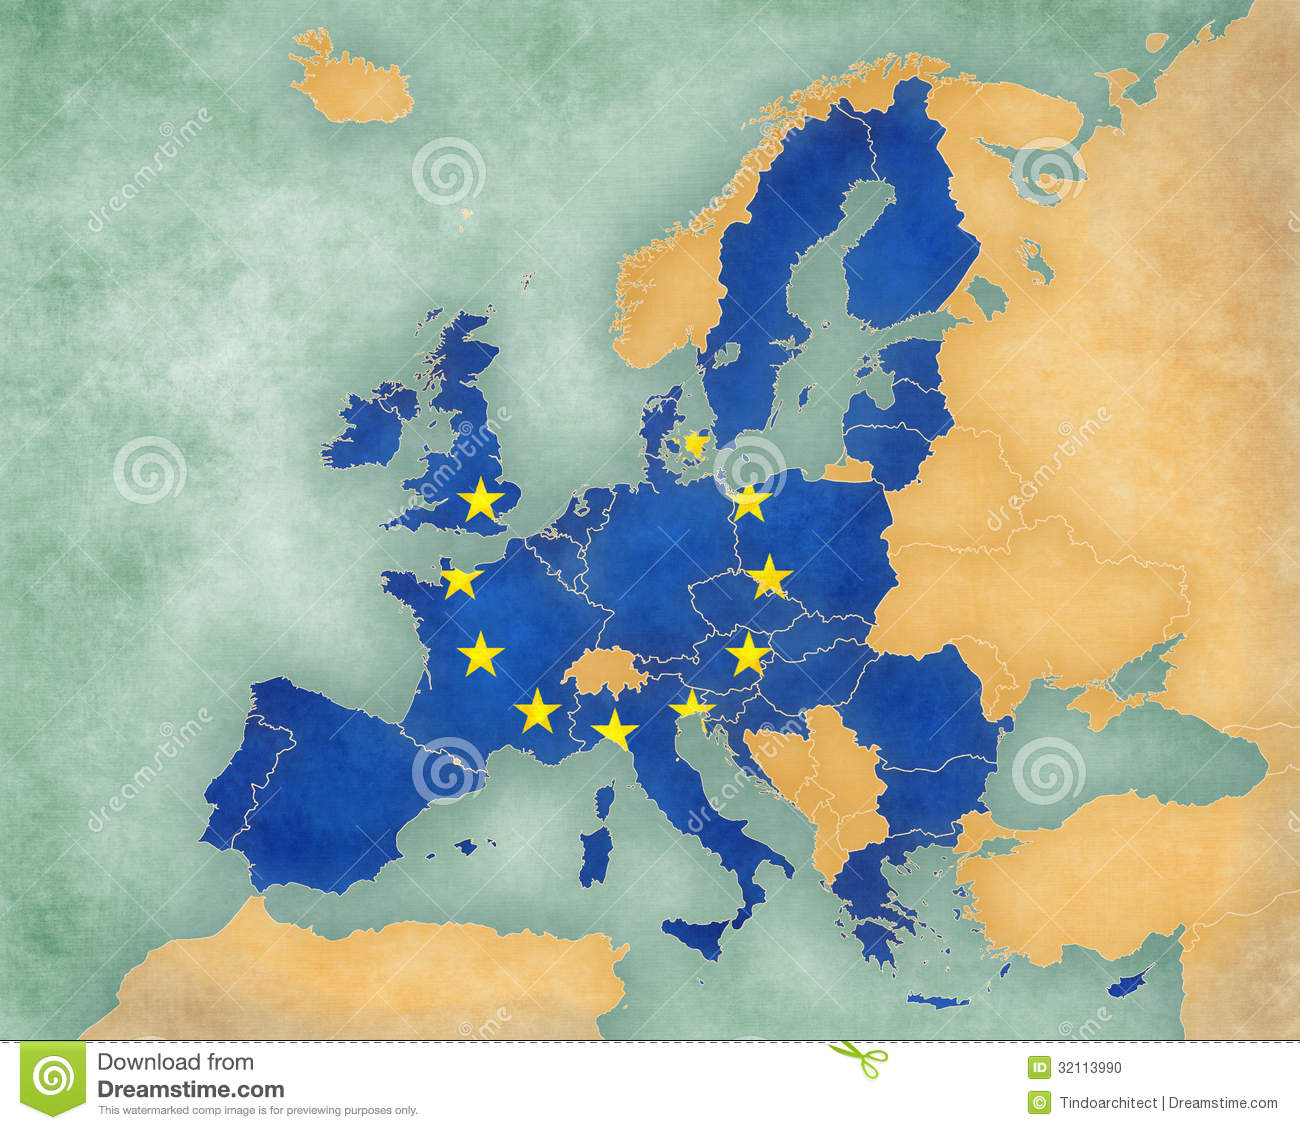 Map Of Europe   European Union 2013  summer Style  Stock     Download Map Of Europe   European Union 2013  summer Style  Stock  Illustration   Illustration